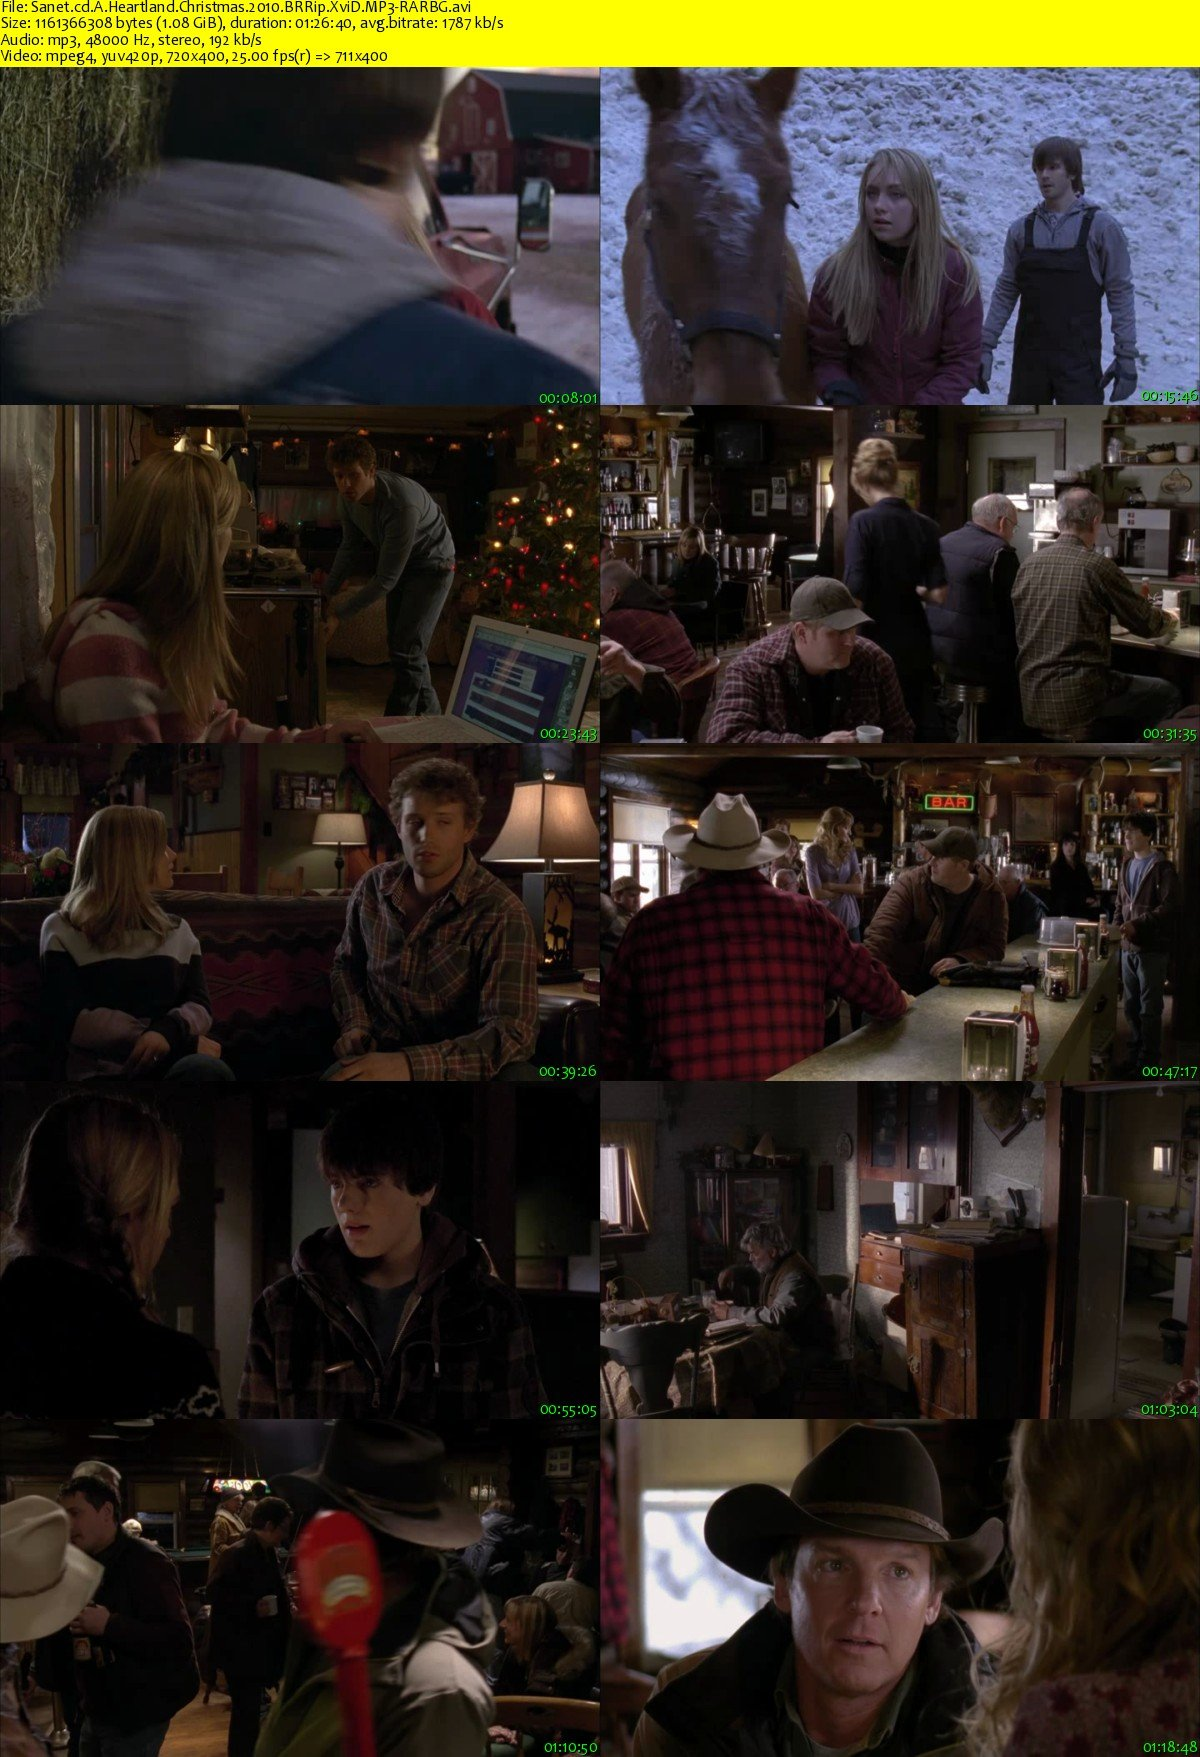 A Heartland Christmas.Download A Heartland Christmas 2010 Brrip Xvid Mp3 Rarbg